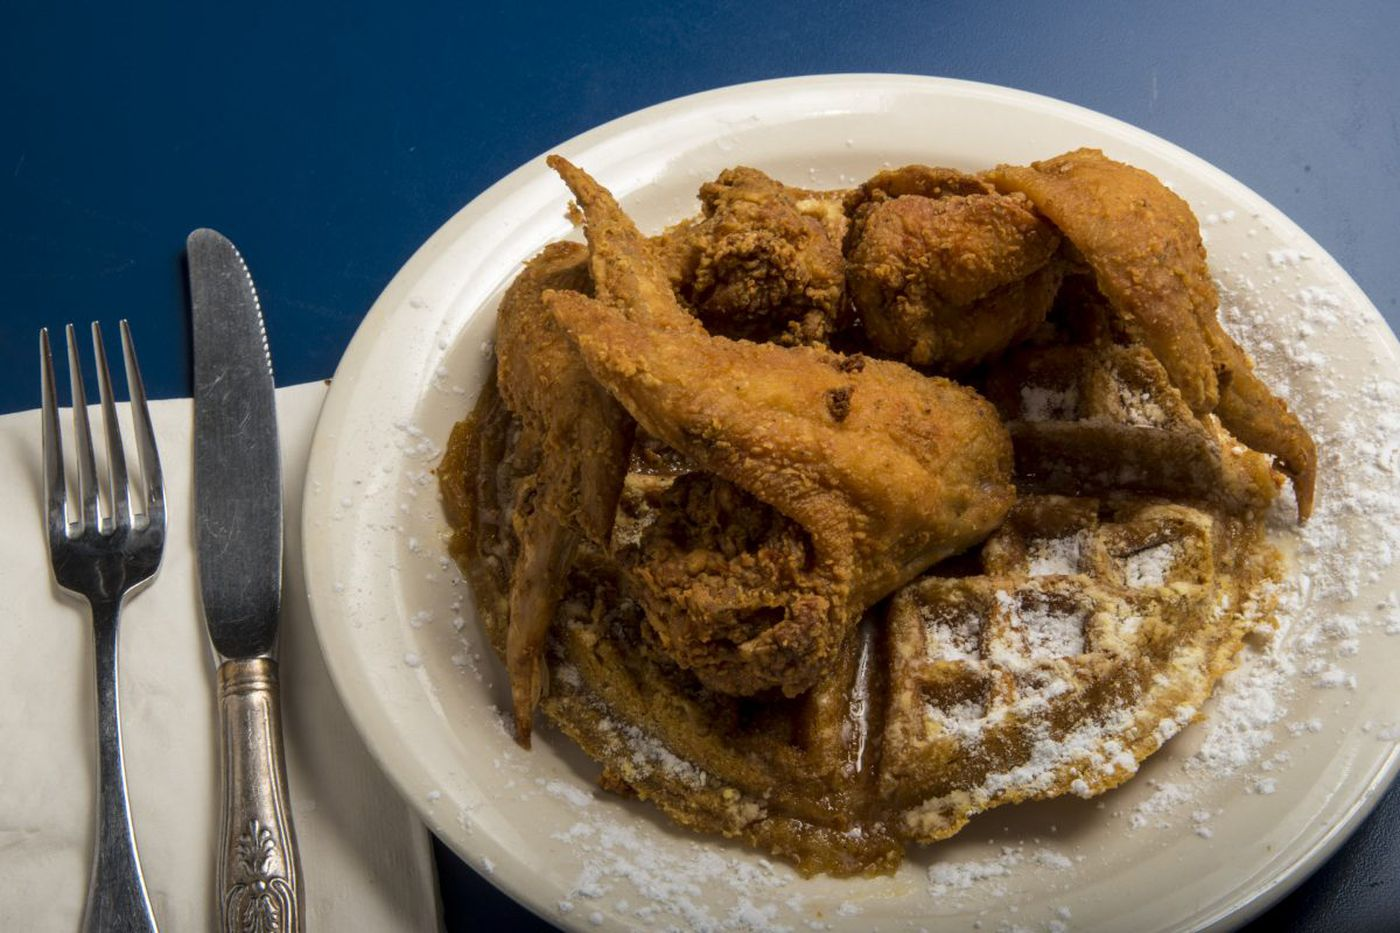 Southern fried chicken over a sweet, savory waffle